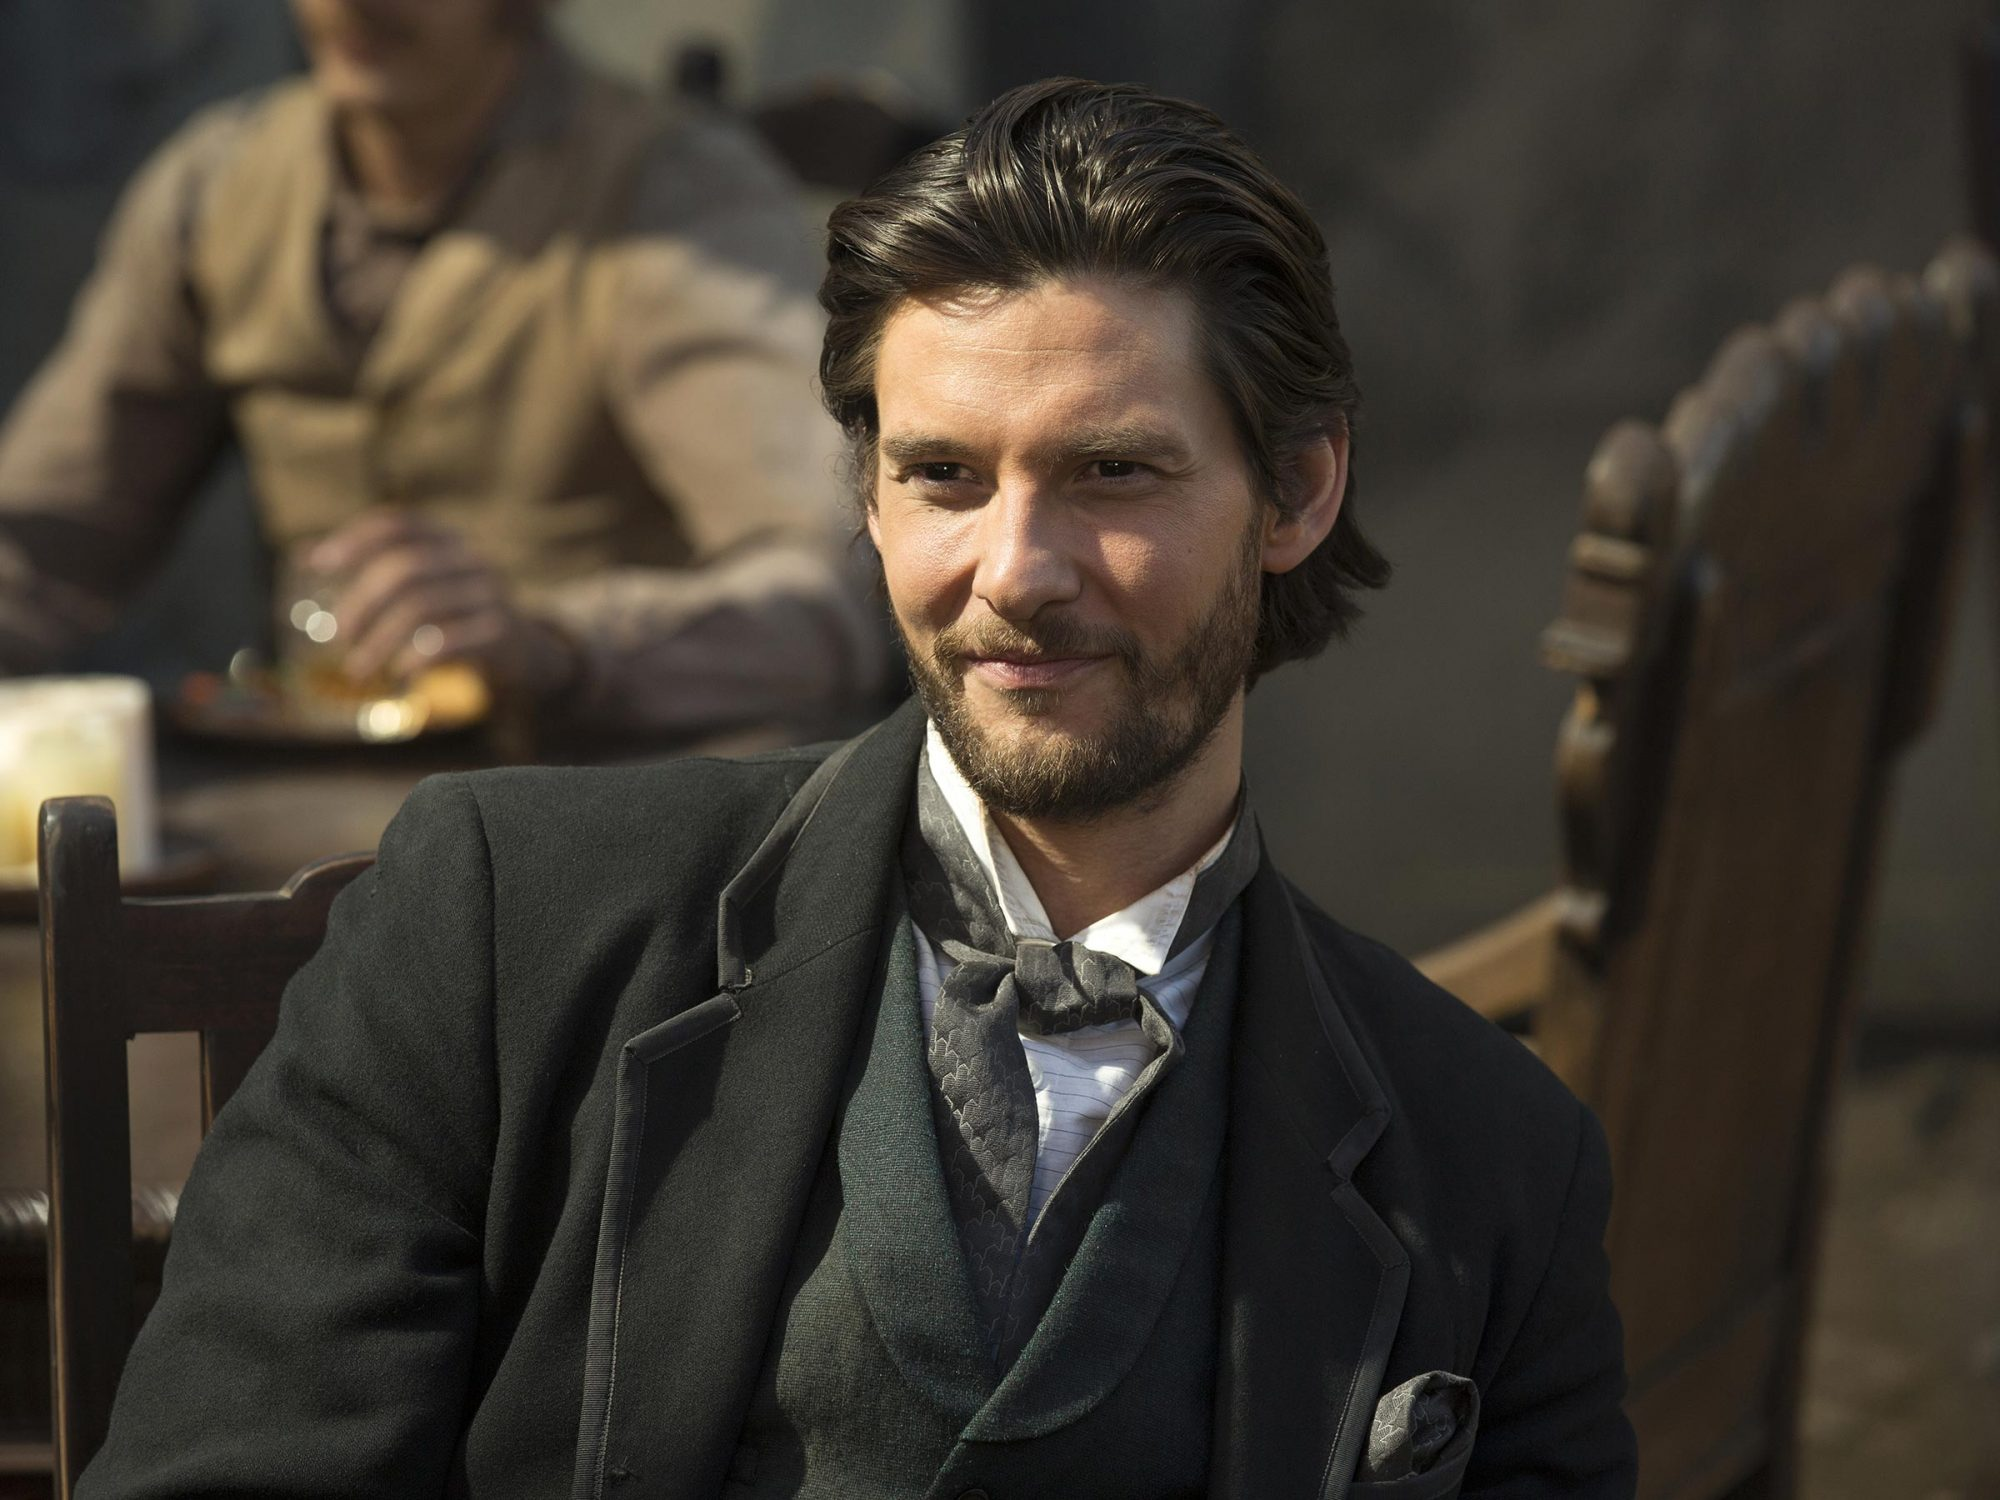 Westworld Season 1 Episode 5: Ben Barnes.photo: John P. Johnson/HBO